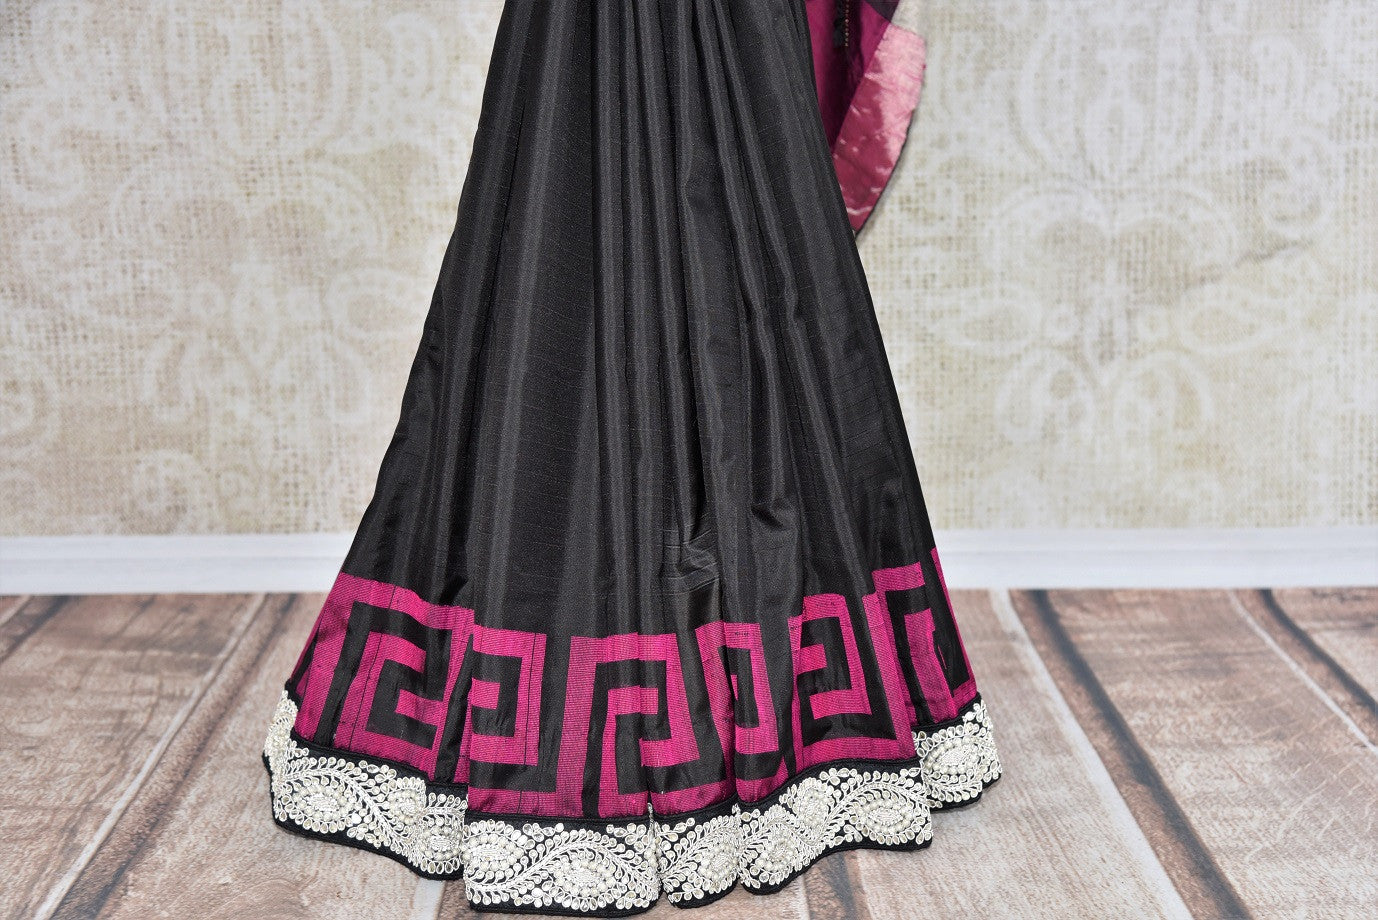 90C254 Black & pink Bangalore silk saree with a bold jewel trim. This traditional saree with elements of modern design is ideal for Indian wedding functions like sangeet and reception & parties. Buy this beautiful saree at Pure Elegance - our ethnic fashion store online in USA.